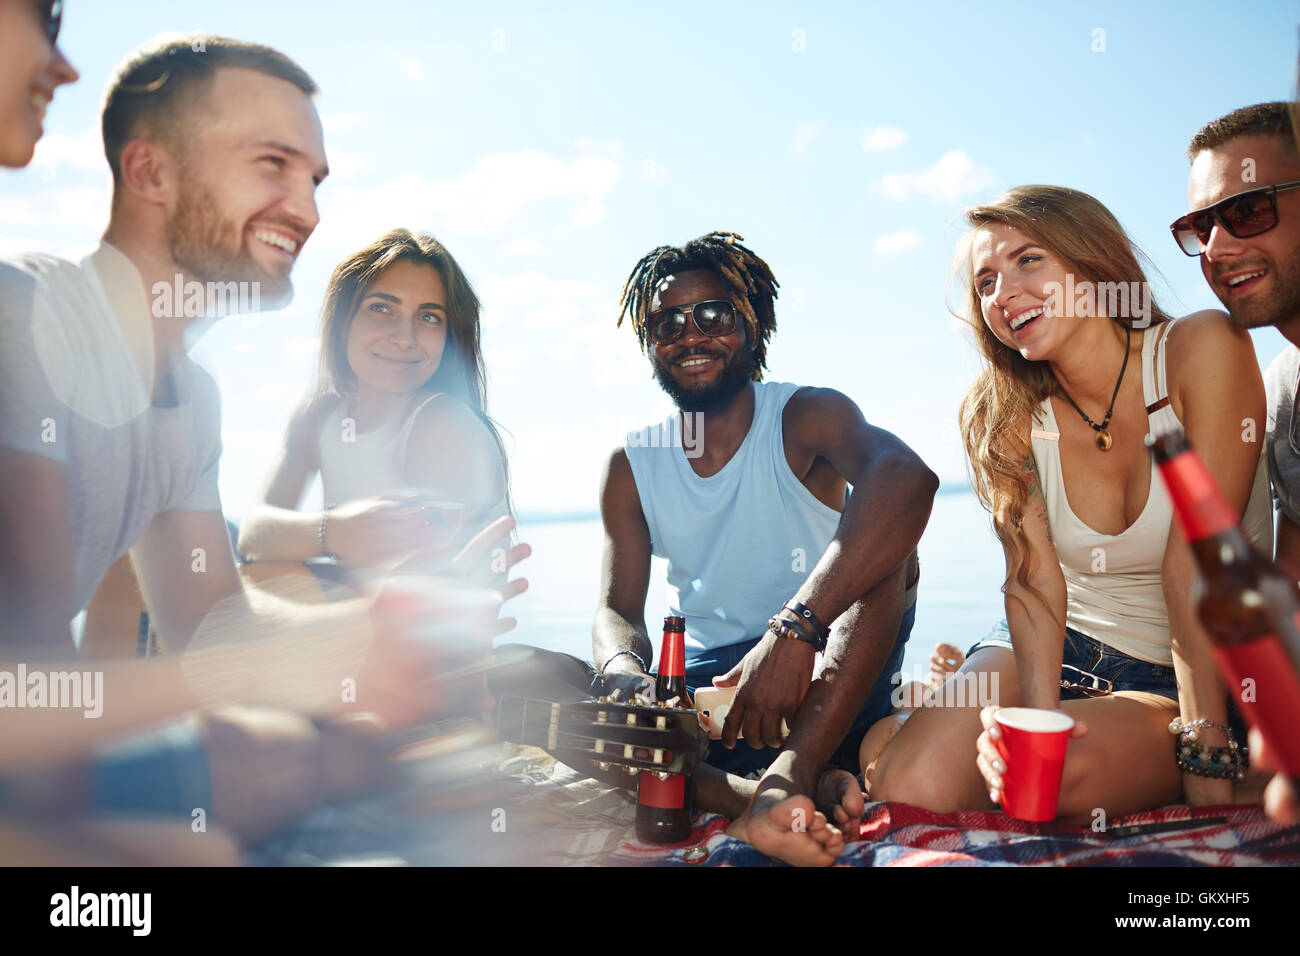 Group of joyful friends having nice time on the beach - Stock Image